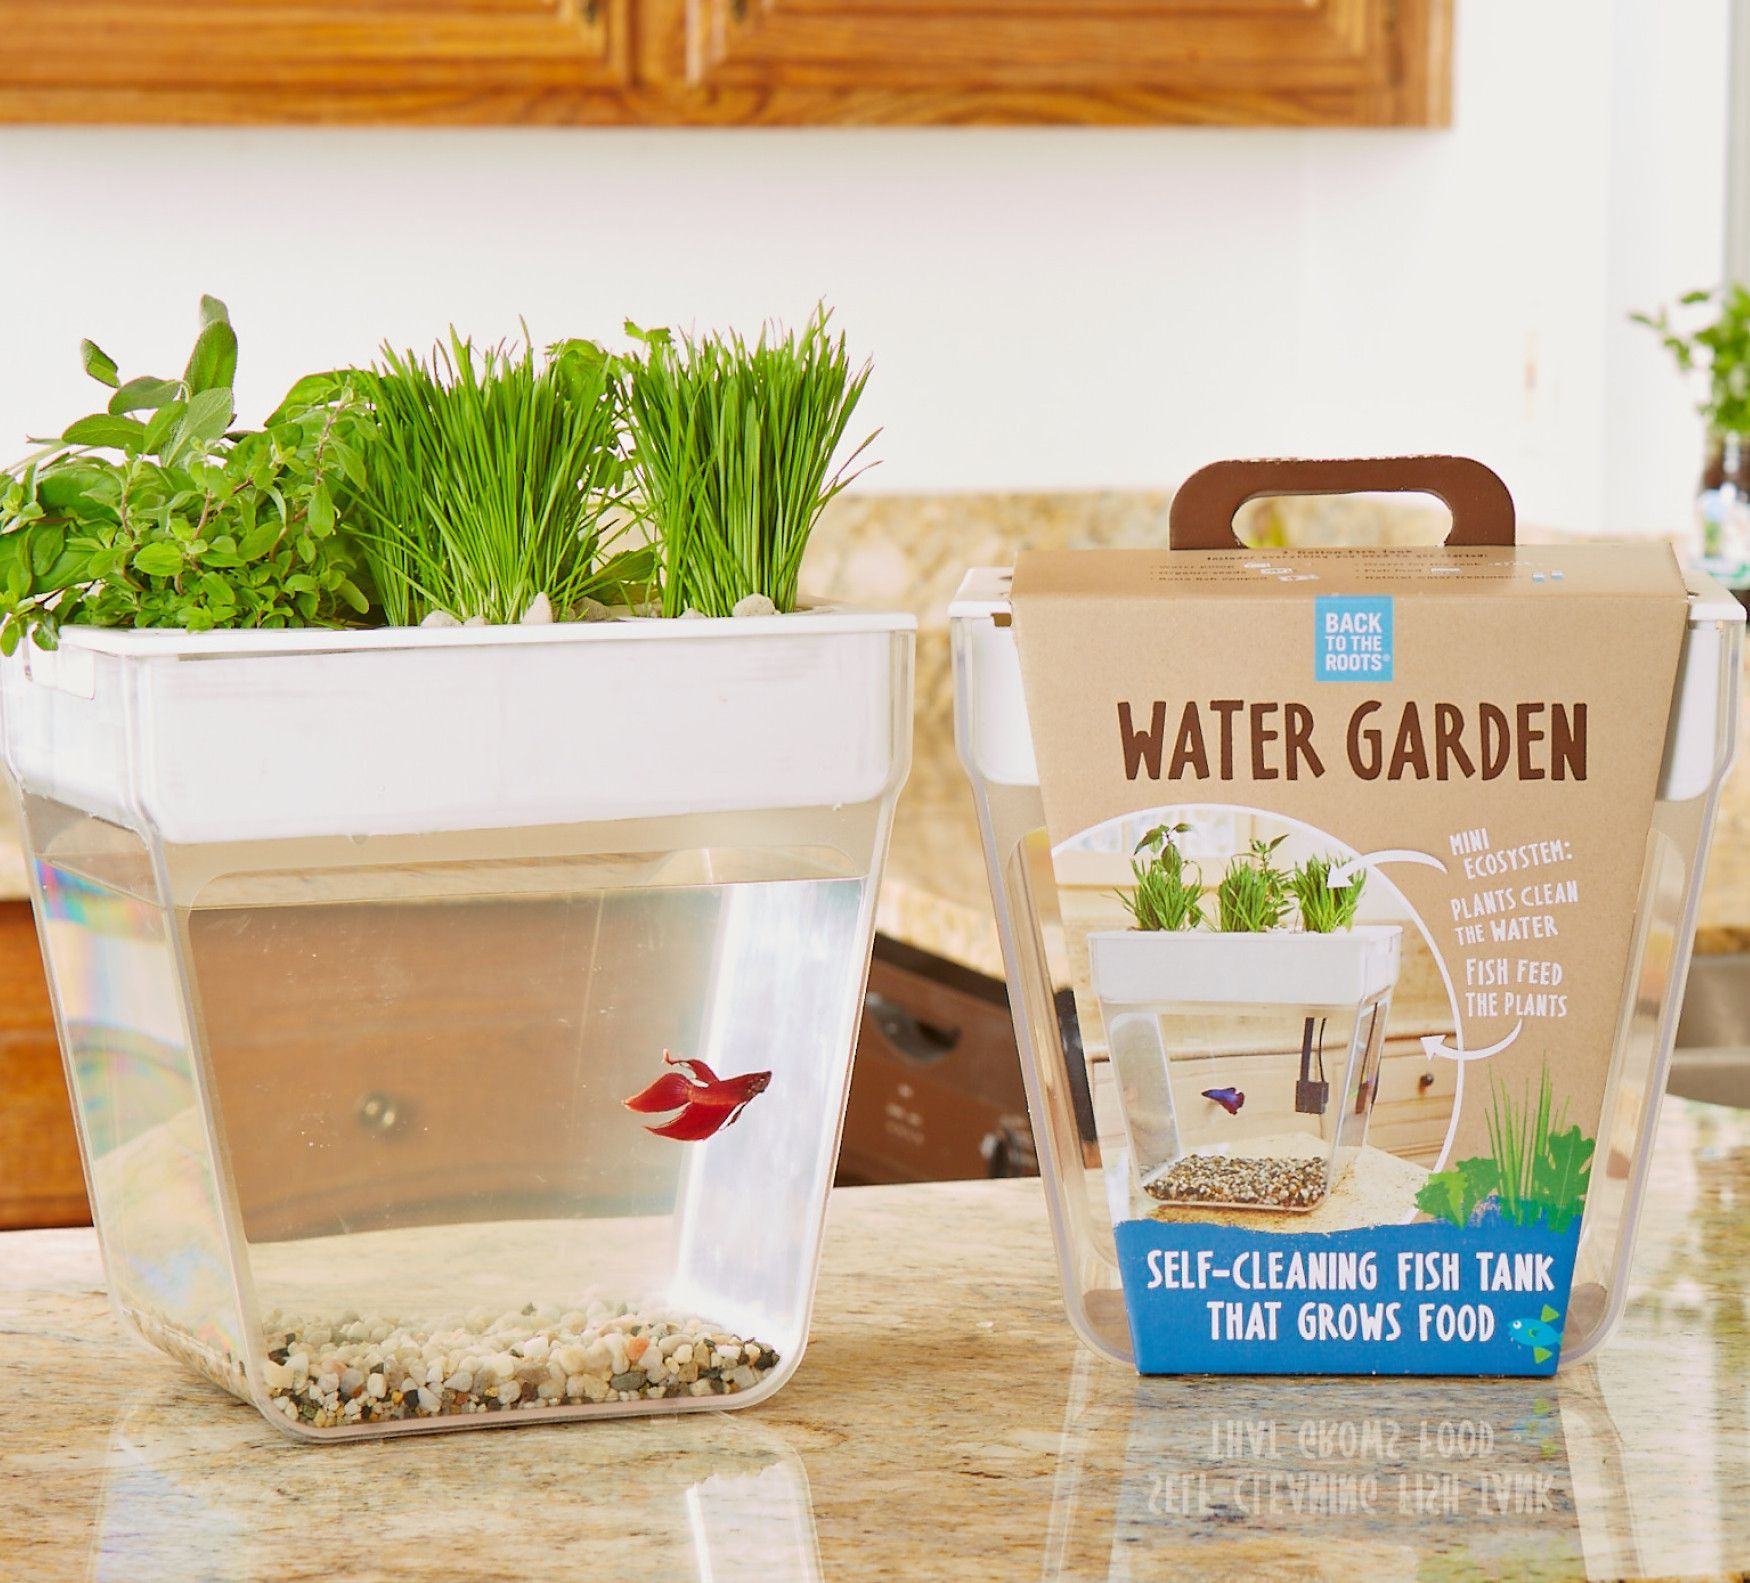 Self Cleaning Fish Tank Garden Water Garden 20 Gardens Creative Gifts And Fish Tanks